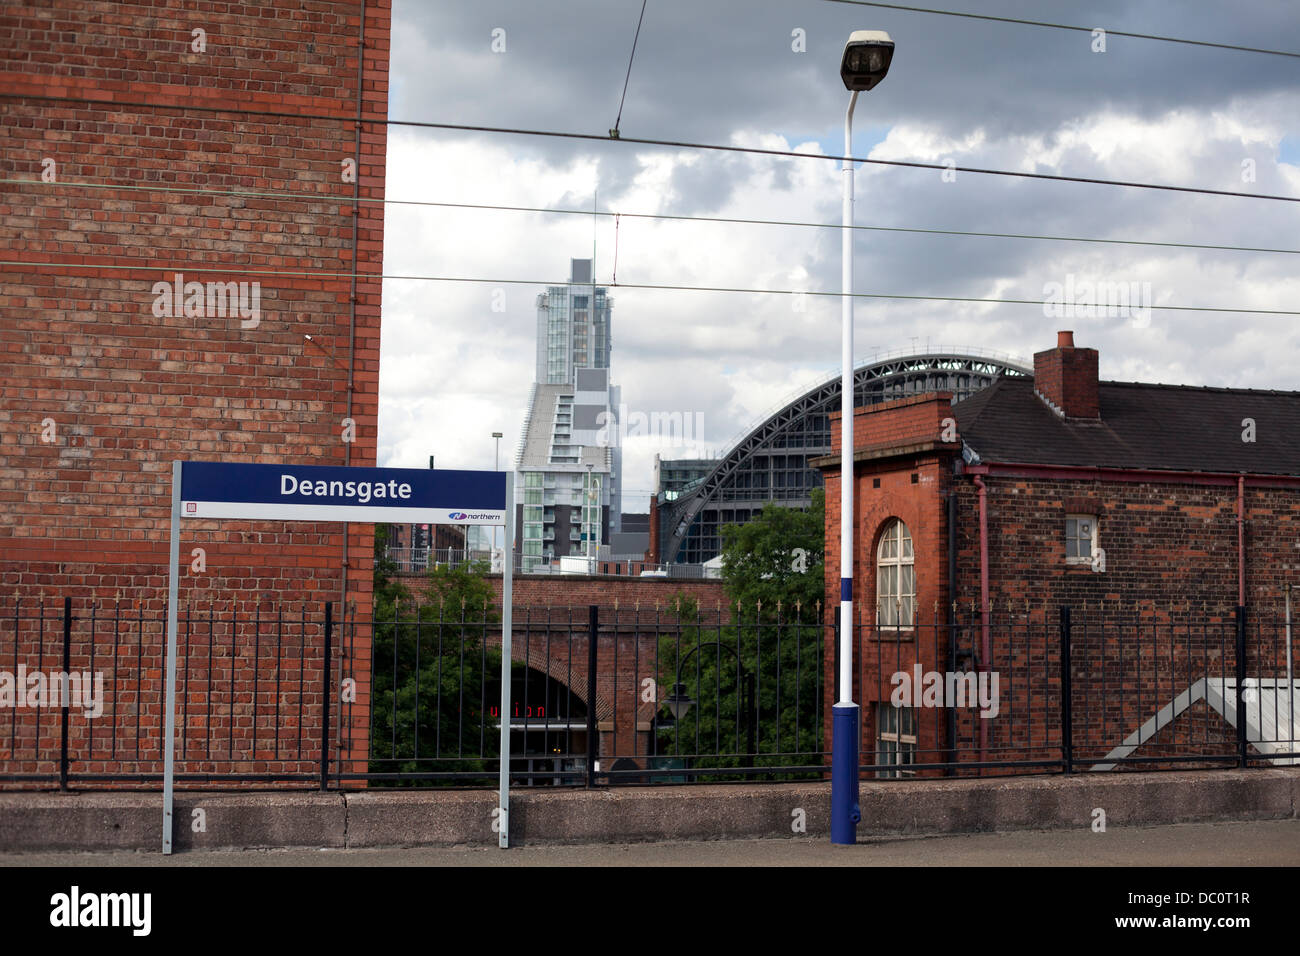 View from Deansgate Train station platform - Stock Image